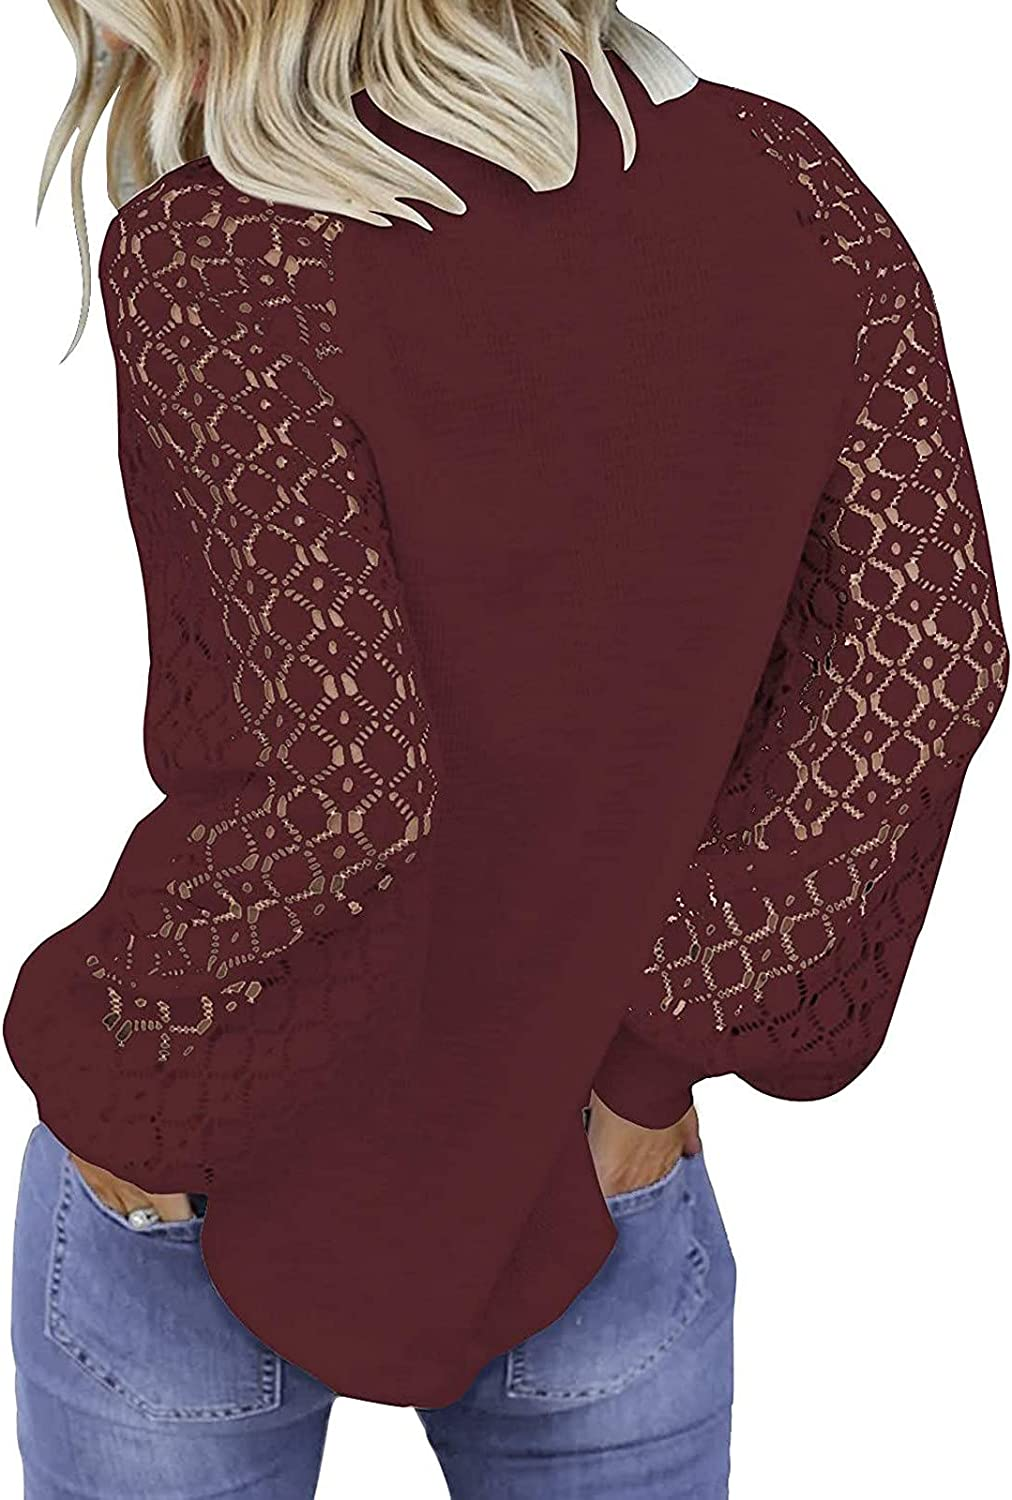 Long Sleeve for Women Casual Loose Blouse Tee Shirts Lace Solid O-Neck Sweatershirt Pullover Tops